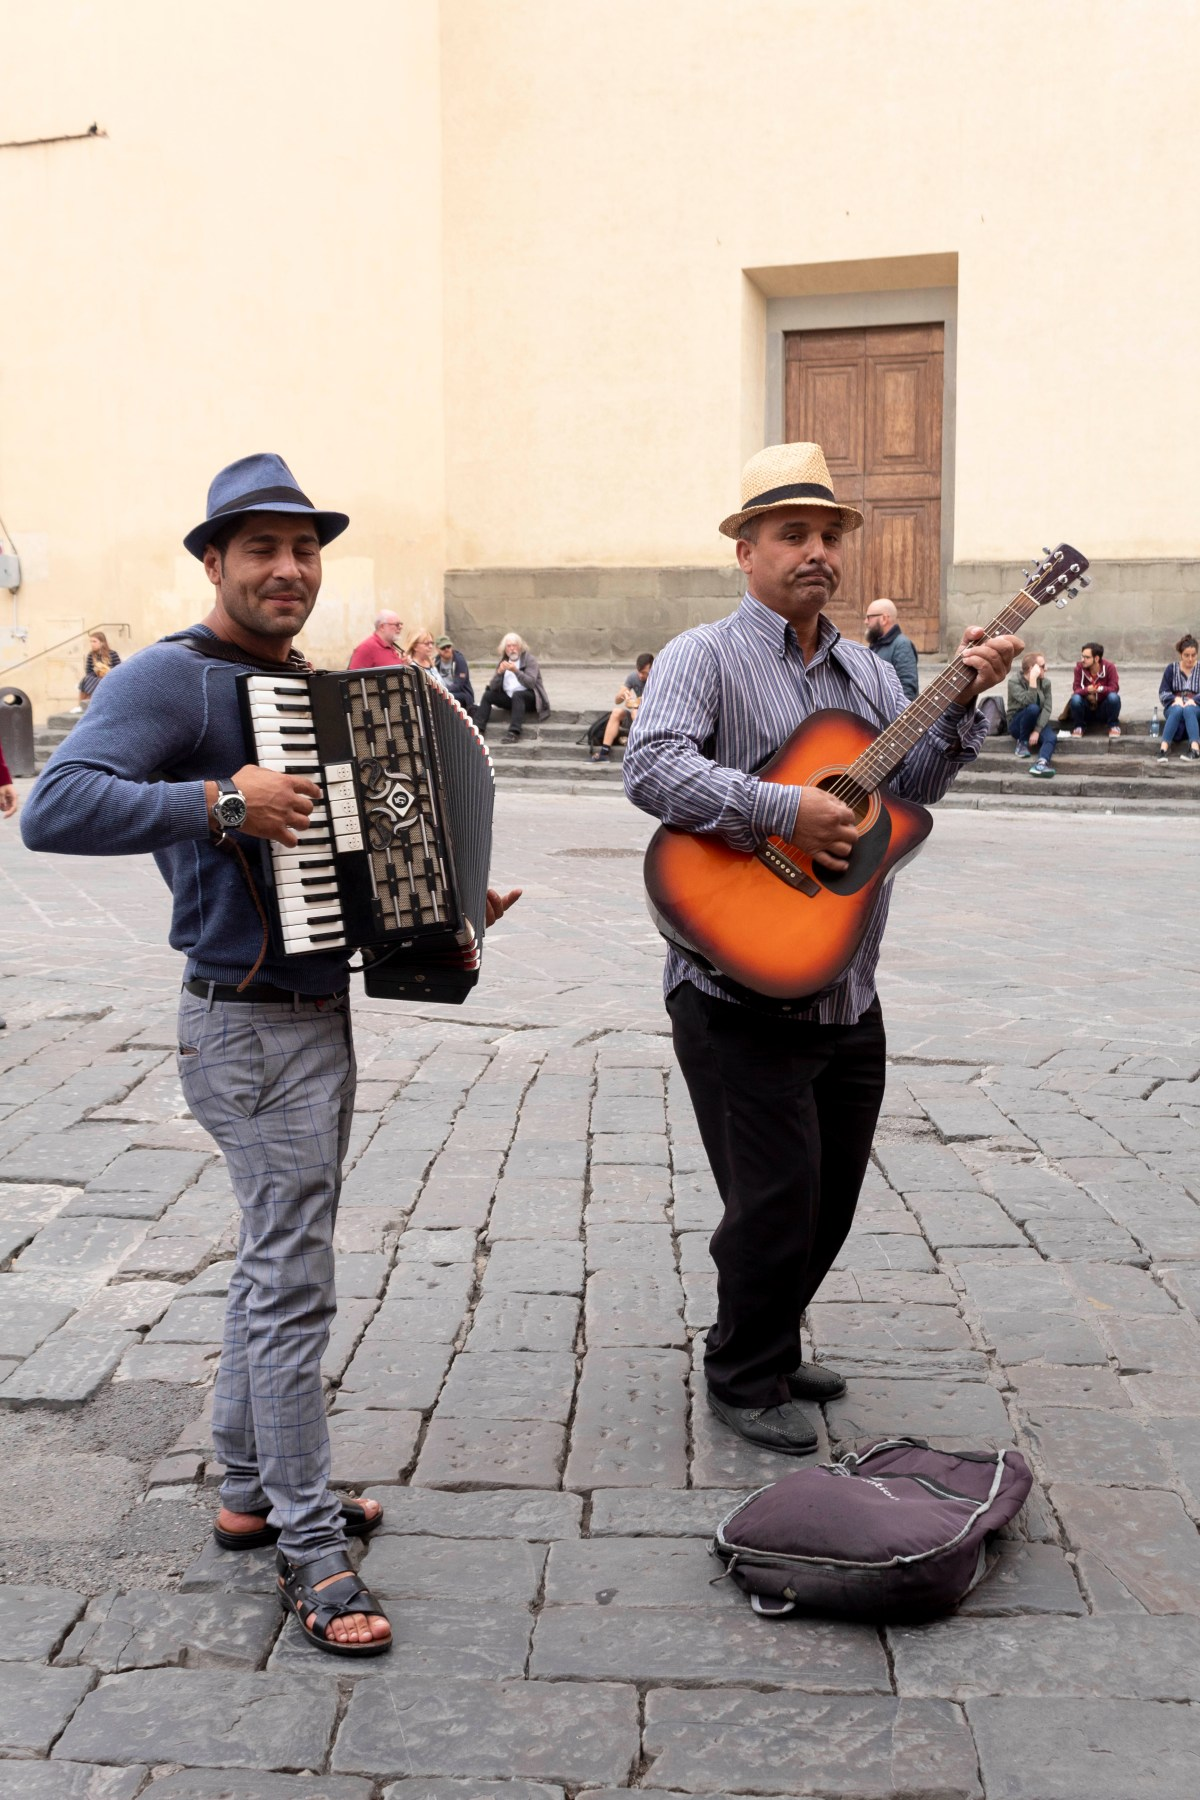 street performers in Florence Italy